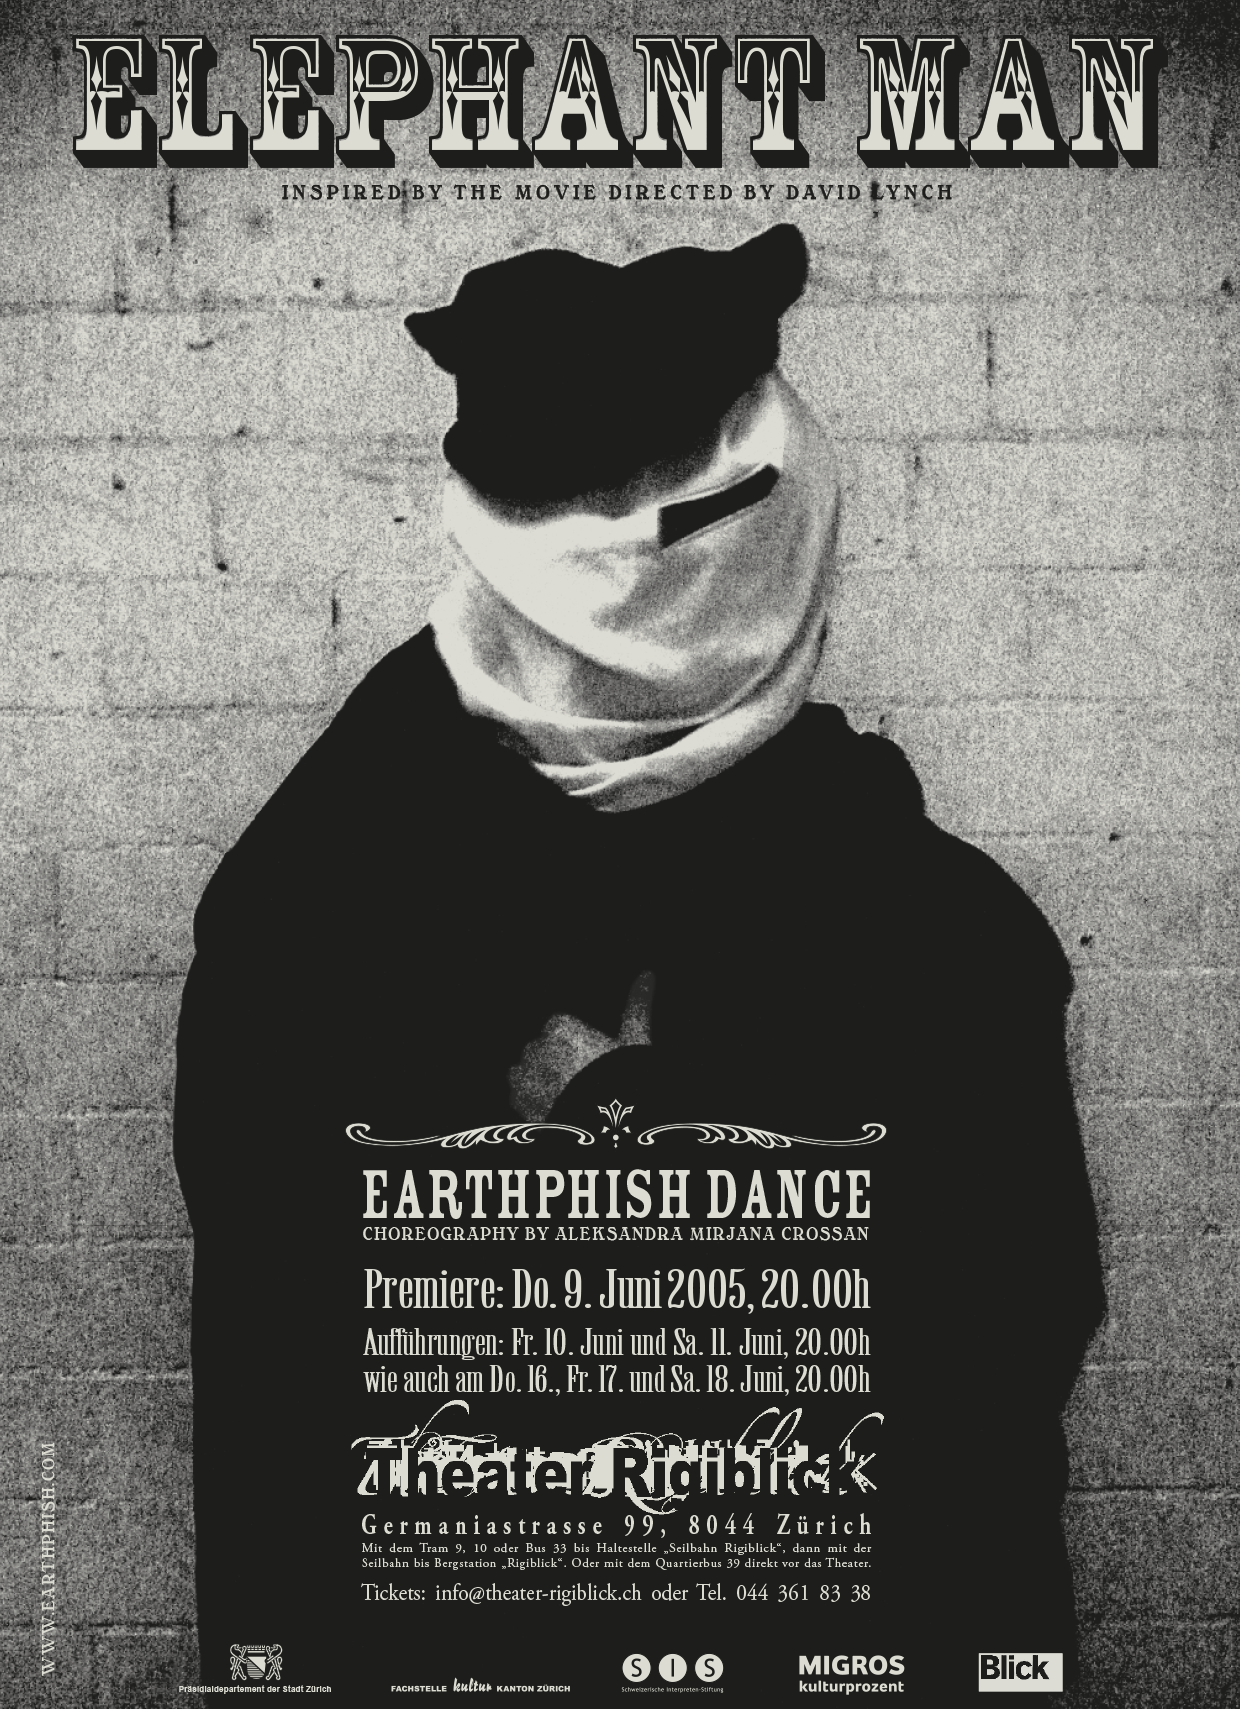 Earthphish Dance Production